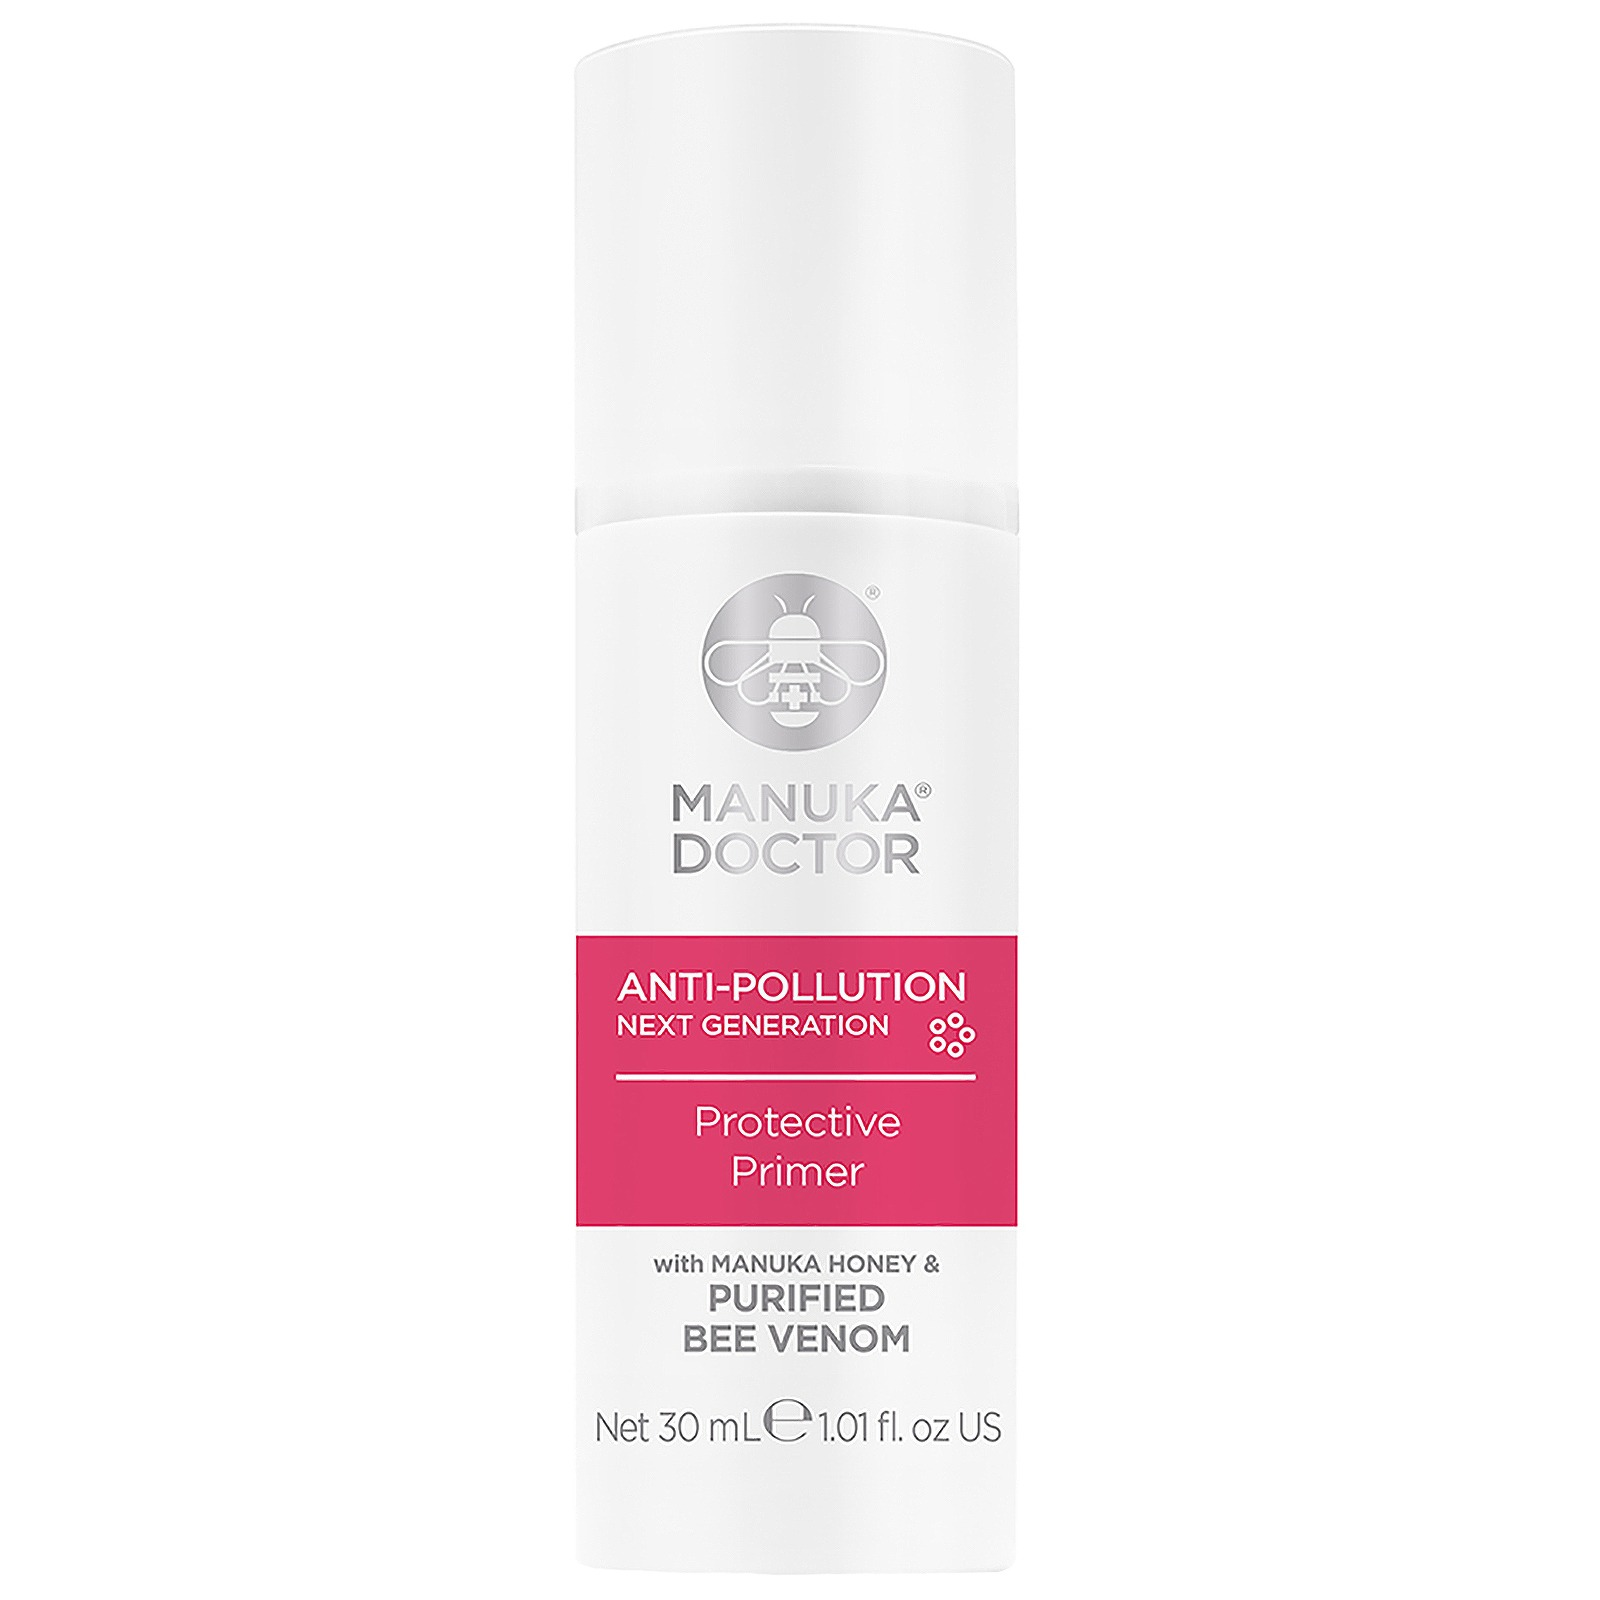 Manuka Doctor Anti-Pollution Protective Primer 30ml